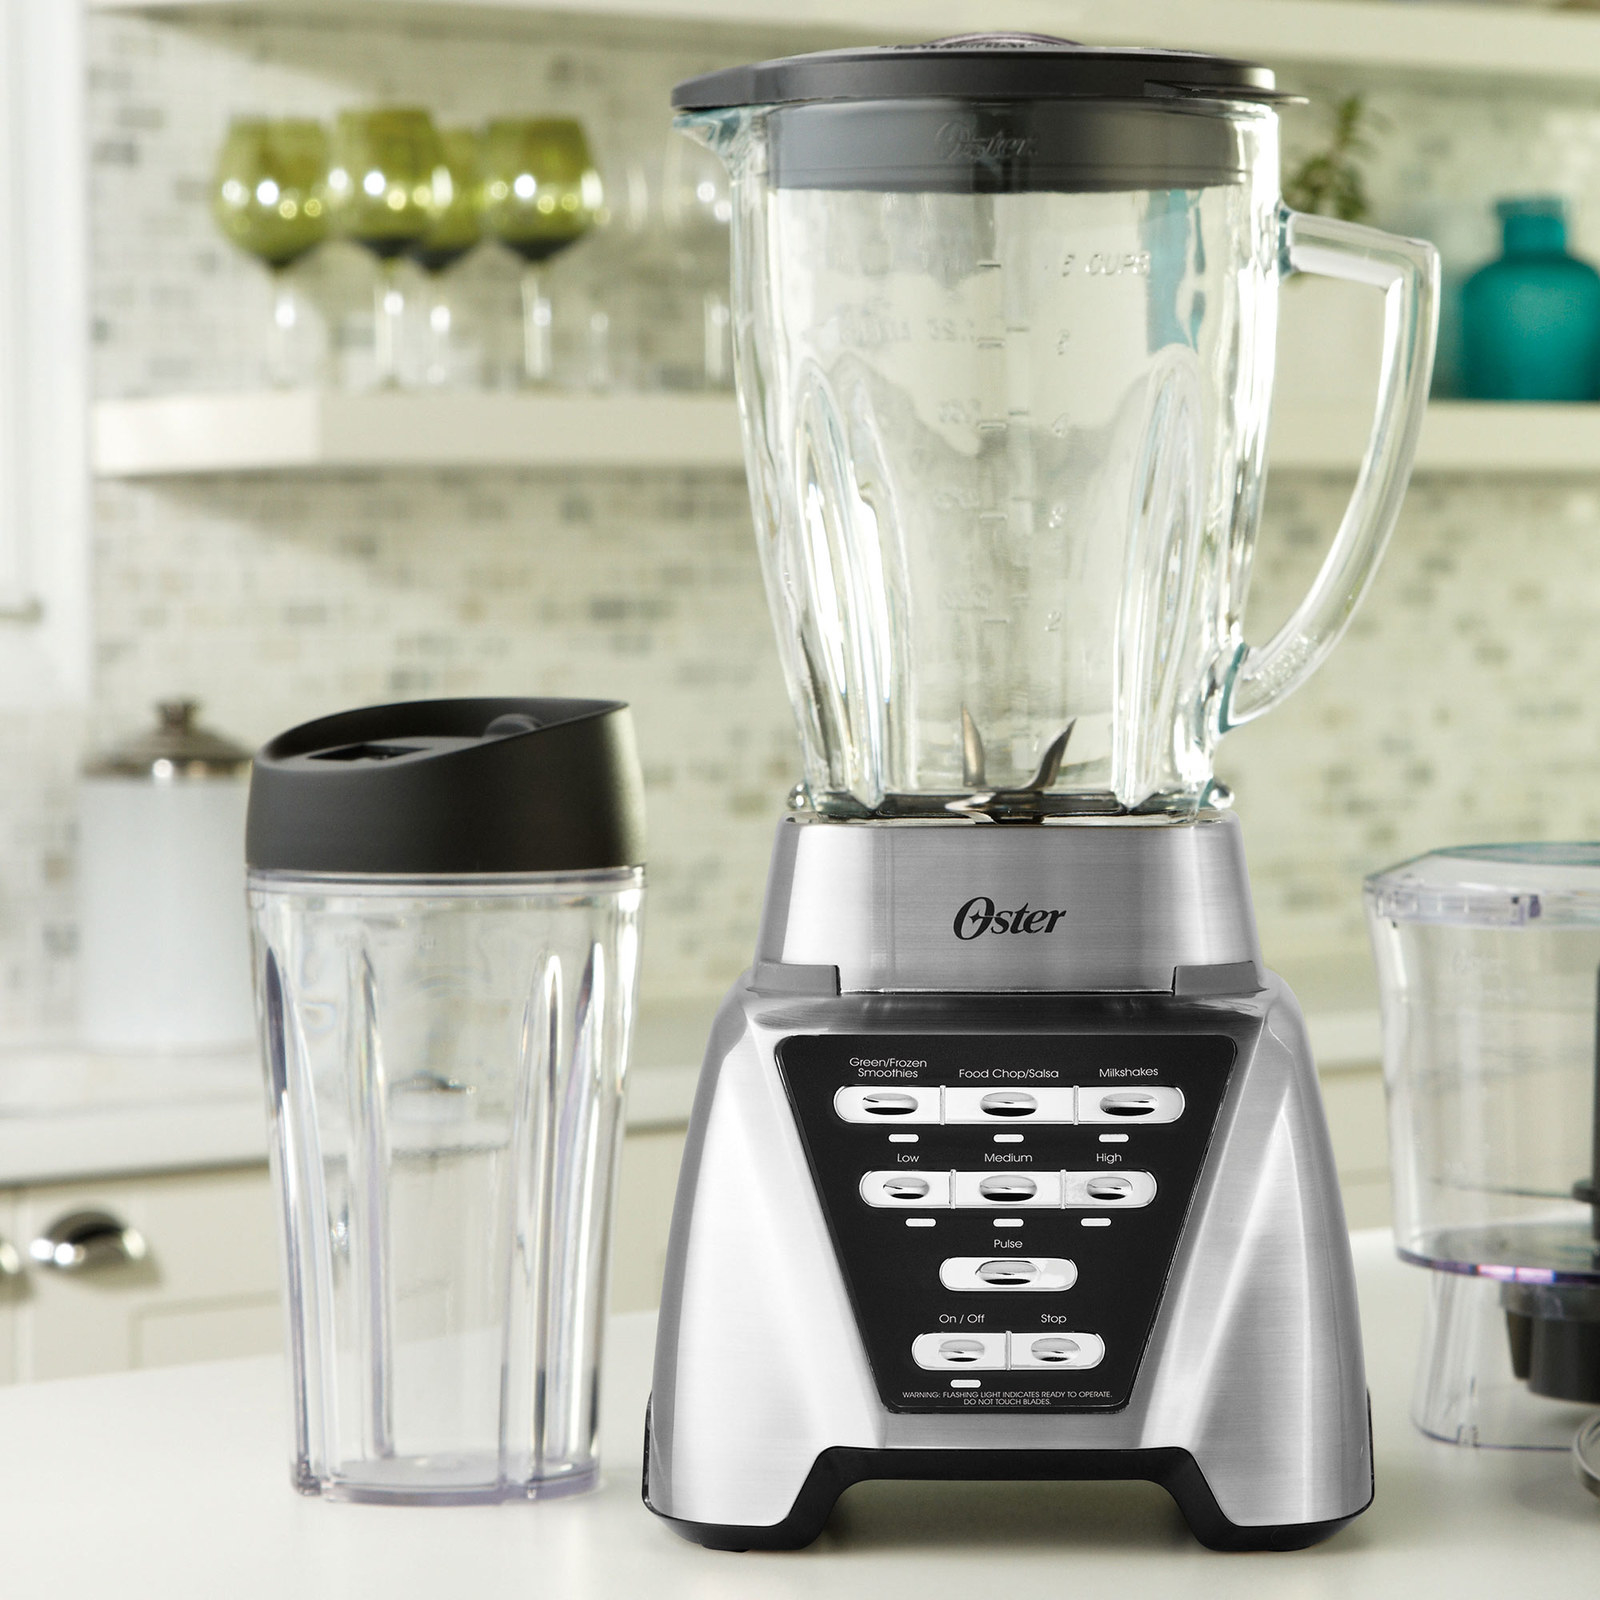 """You'll be apologizing for your uncle Eric's comments for years to come. Promising review: """"I love this blender. It's easy to use, easy to clean, and I love how easily it can liquify smoothies and potatoes or broccoli soup. It is strong and steady. I made almond butter and it came out great. I can make four smoothies at a time. It's also great for frozen fruits."""" —vickynikiPrice: $59"""